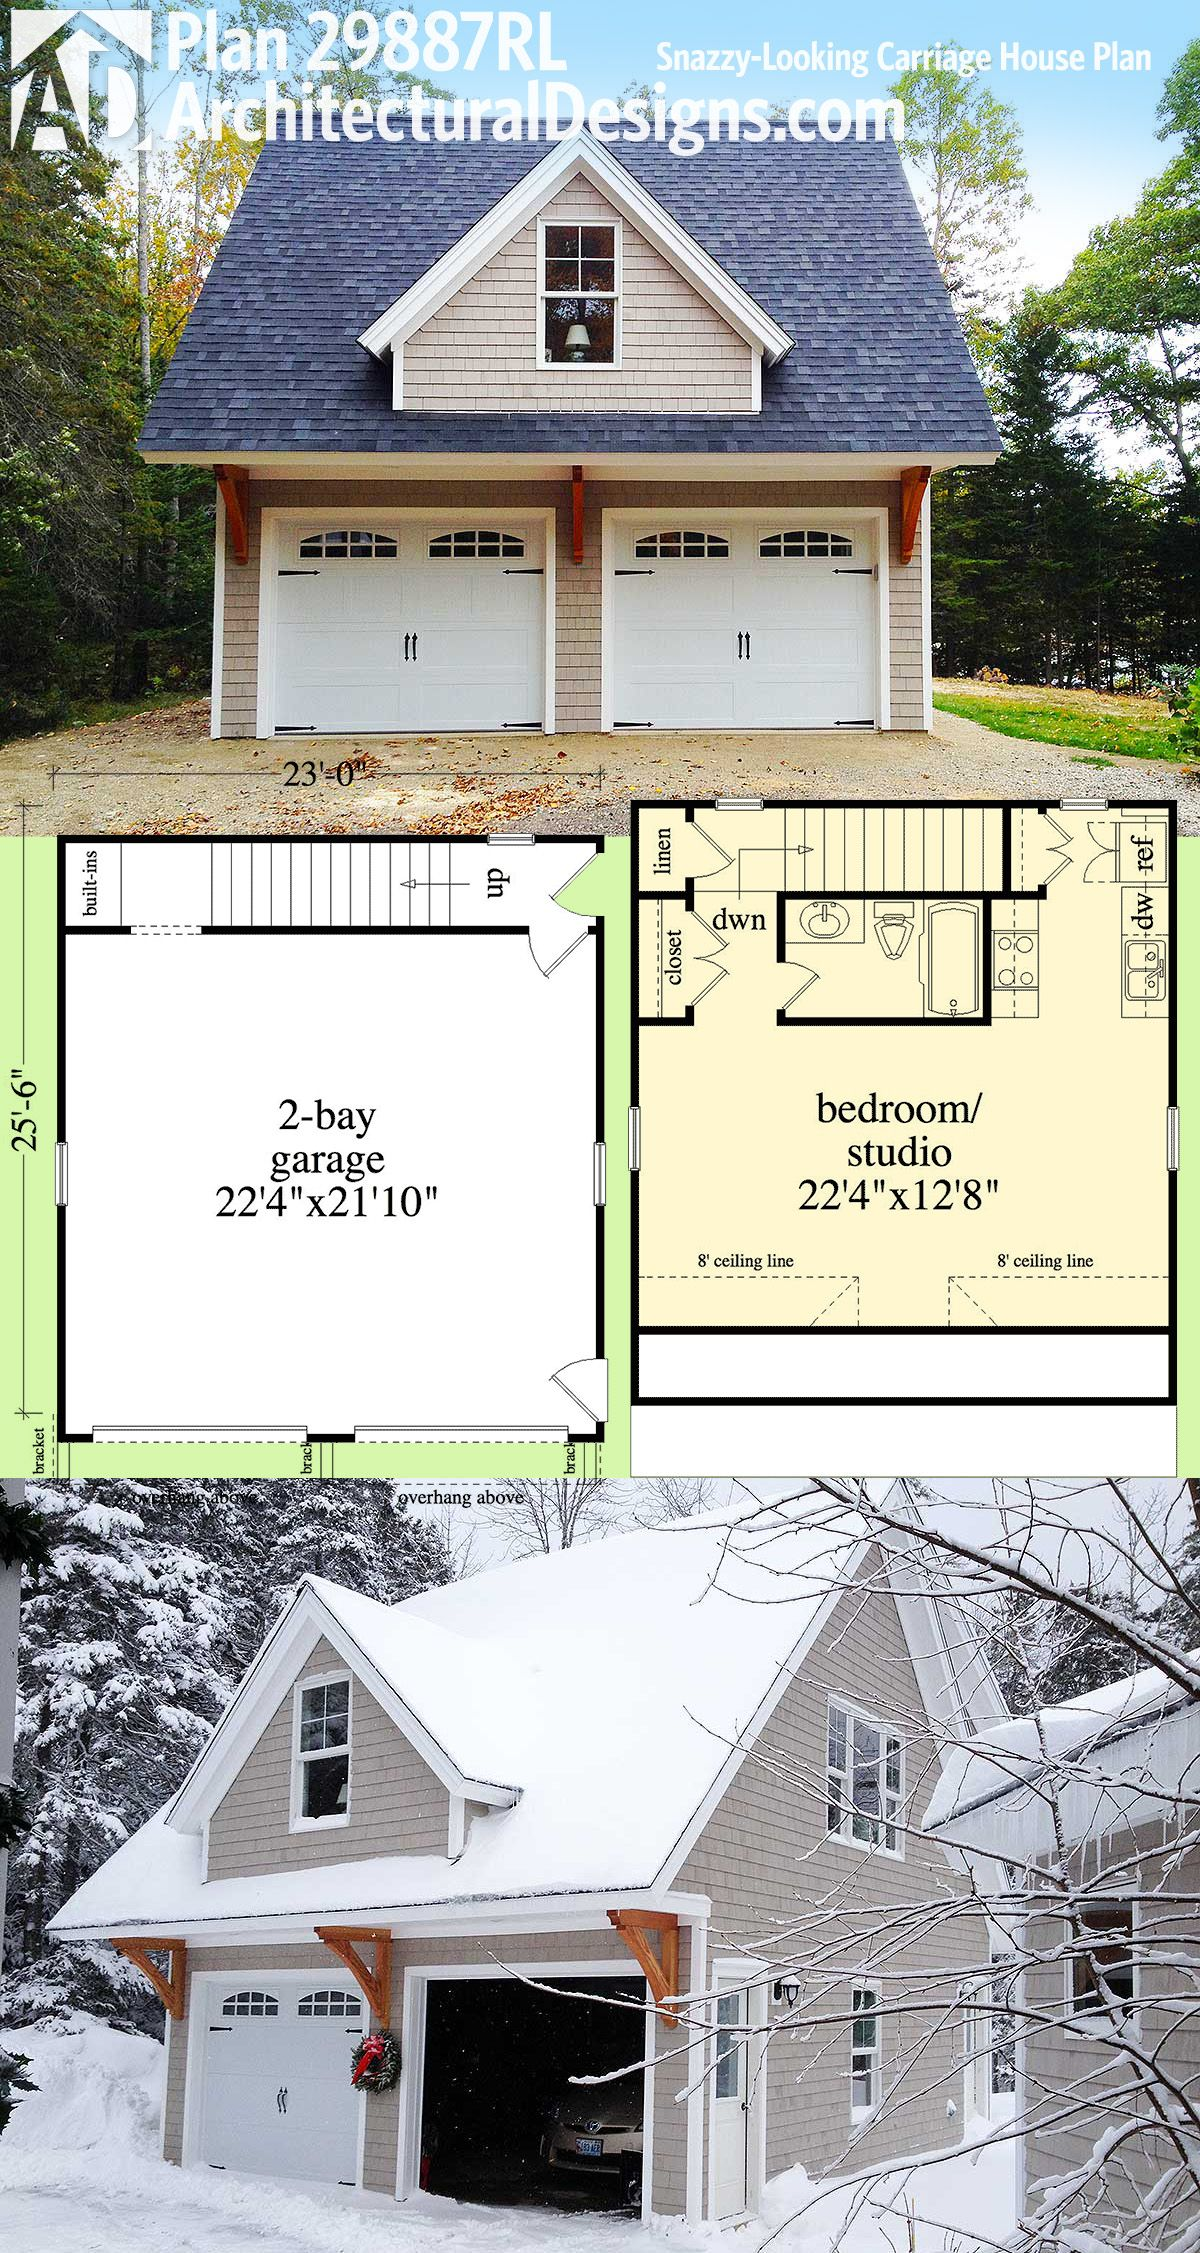 Architectural Designs Carriage House Plan 29887rl Can Be Used As A Garage Vacation Home In Law Apartment Man Cave Playhouse Or Office